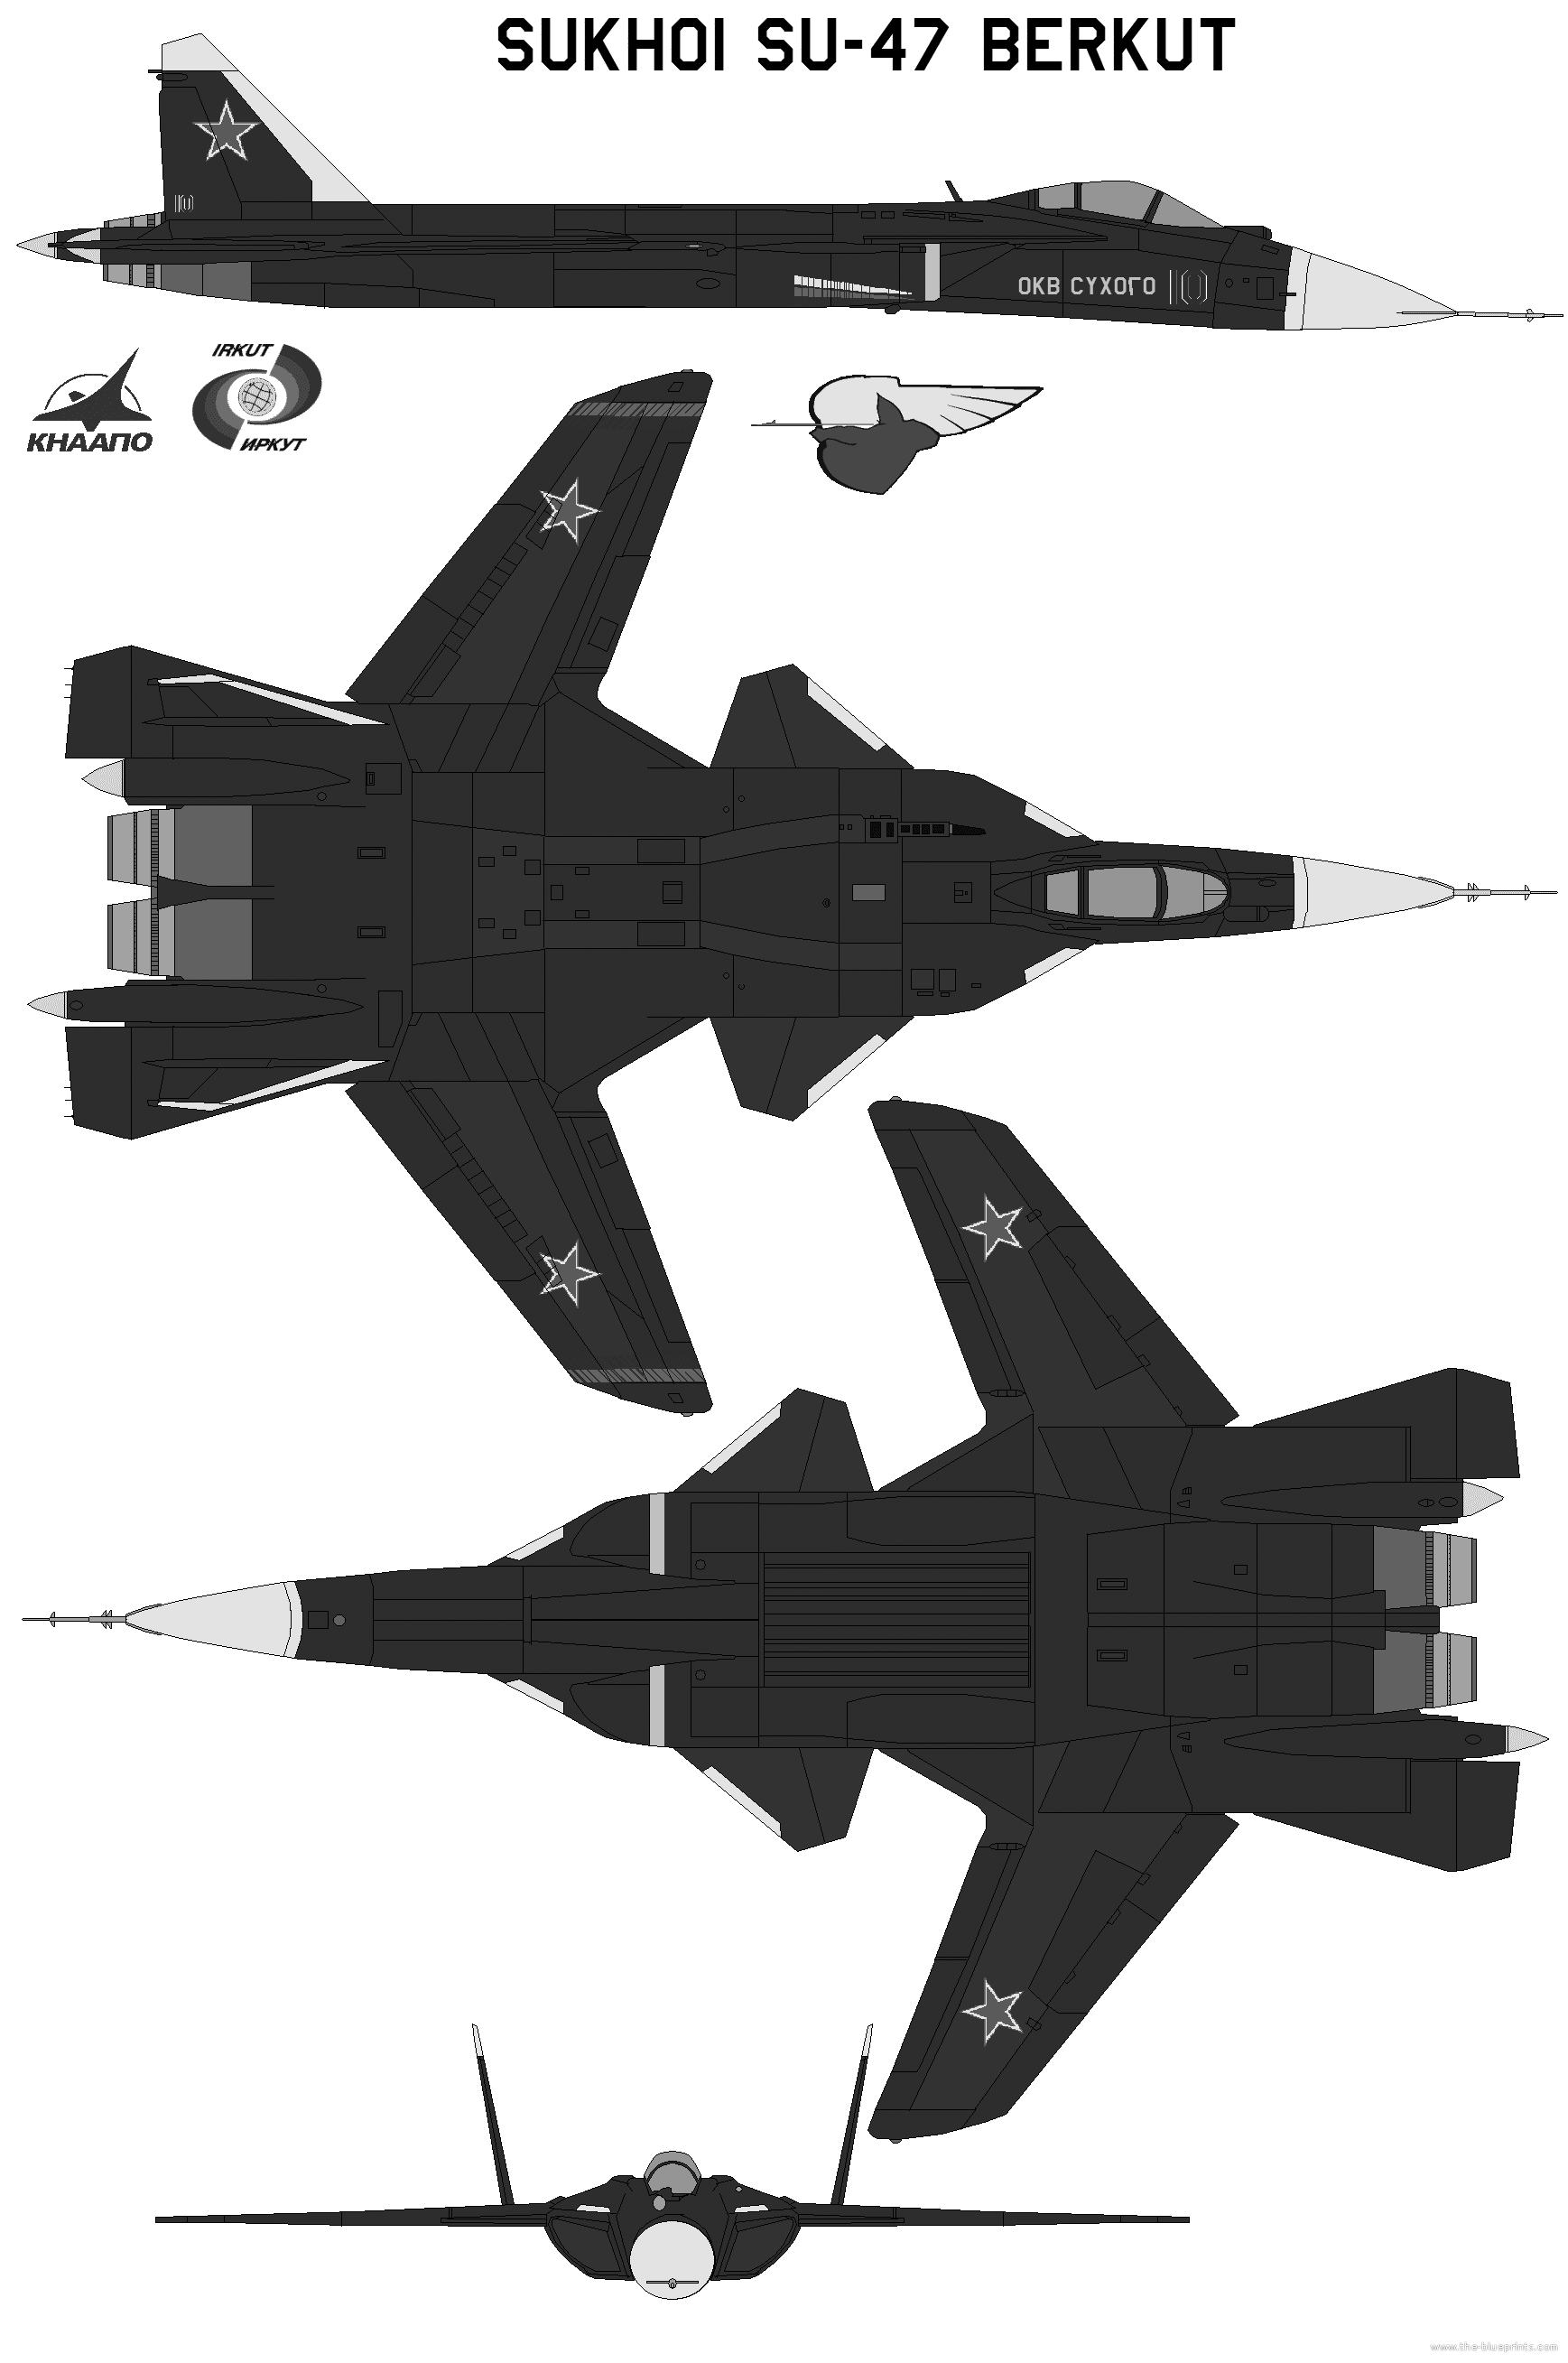 Sukhoi SU-47 Berkut blueprints free - Outlines